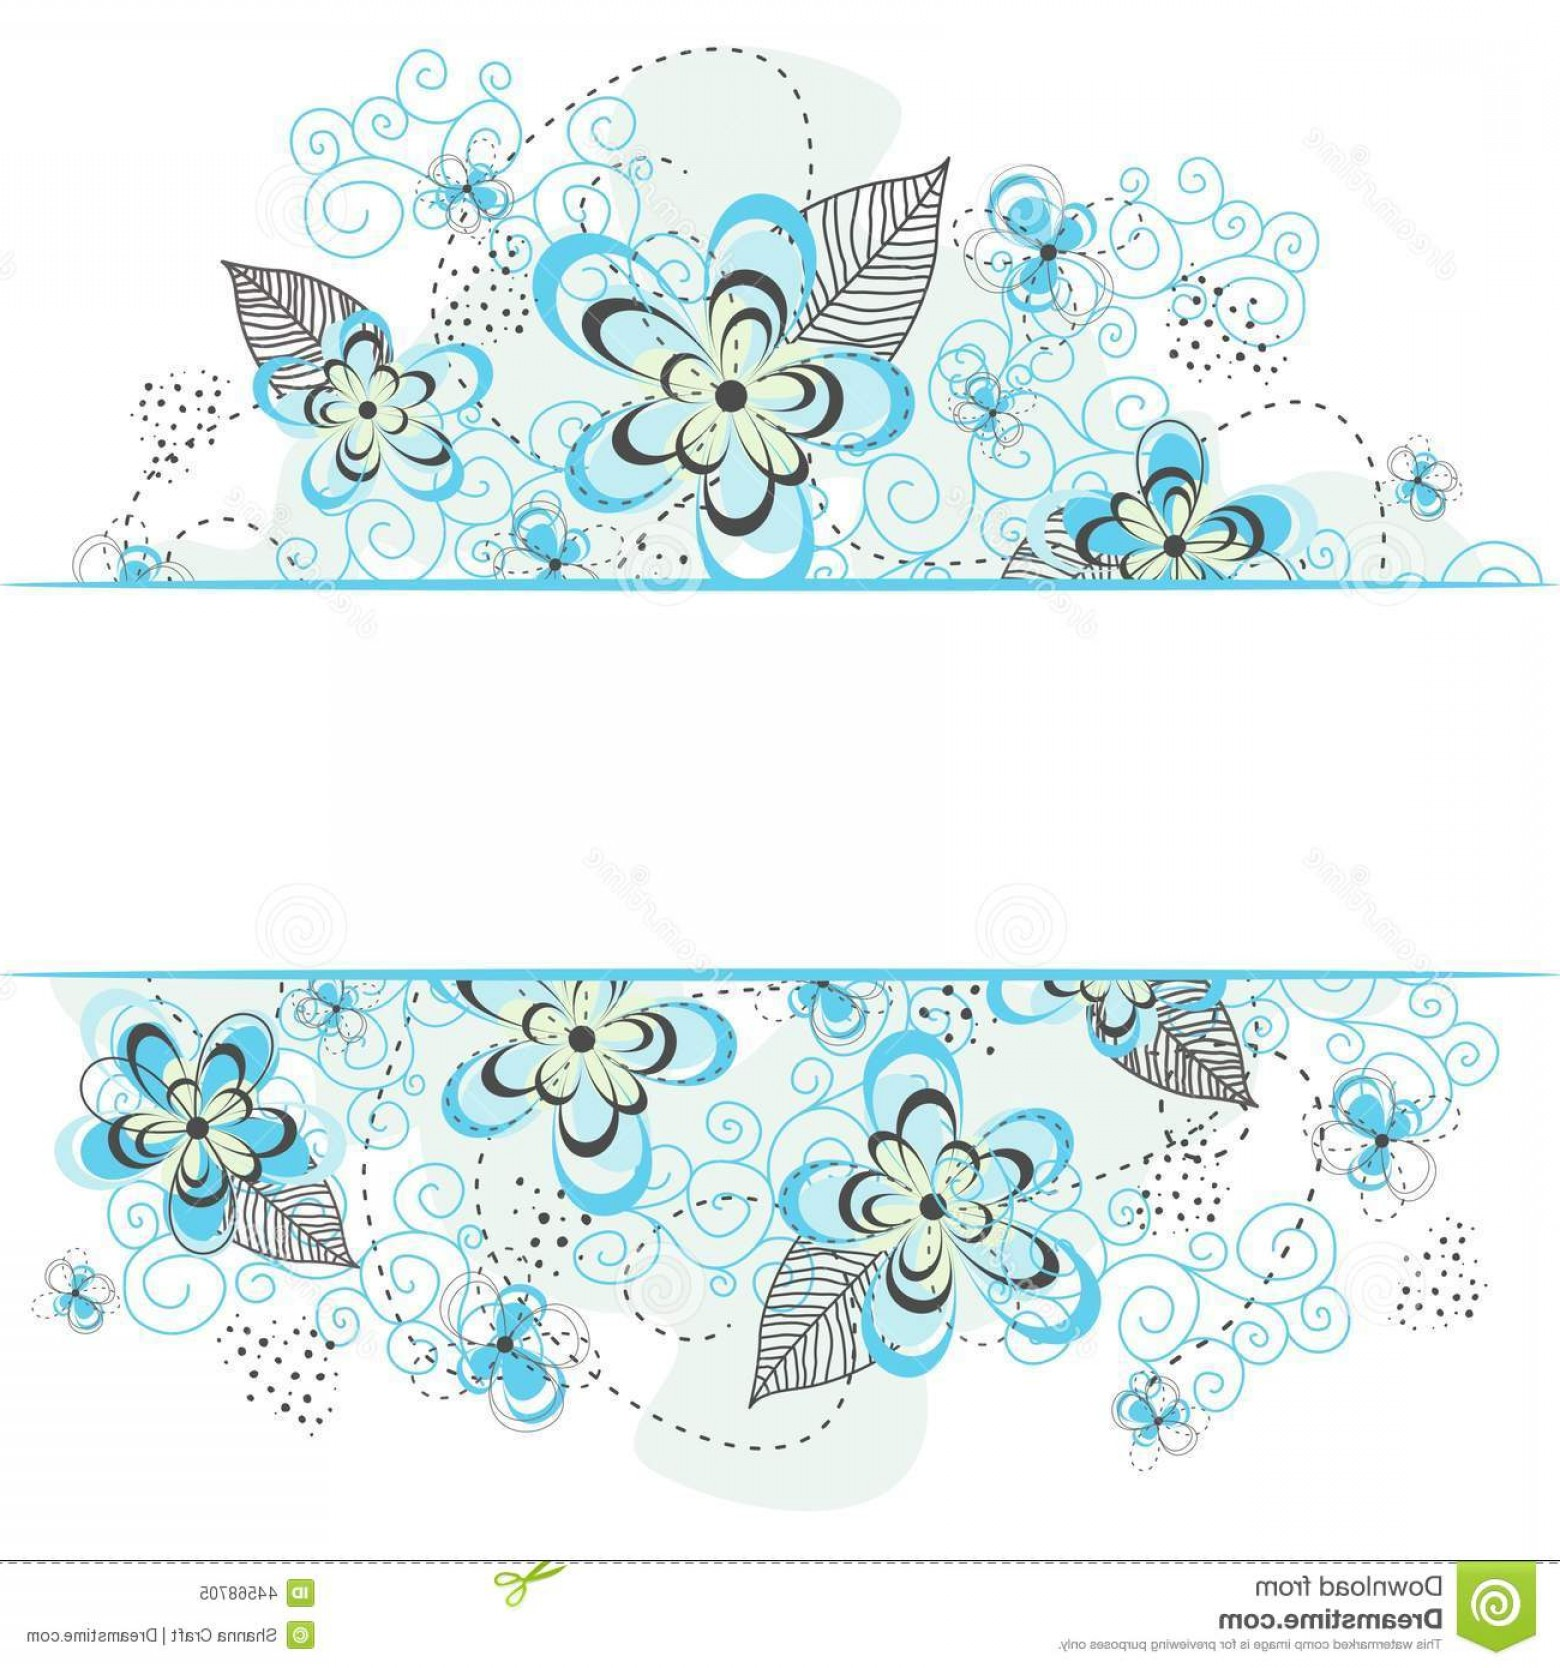 Turquoise Flower Vector: Stock Illustration Blue Floral Background Border Teal White Swirls Flowers Blooms Dots White Image